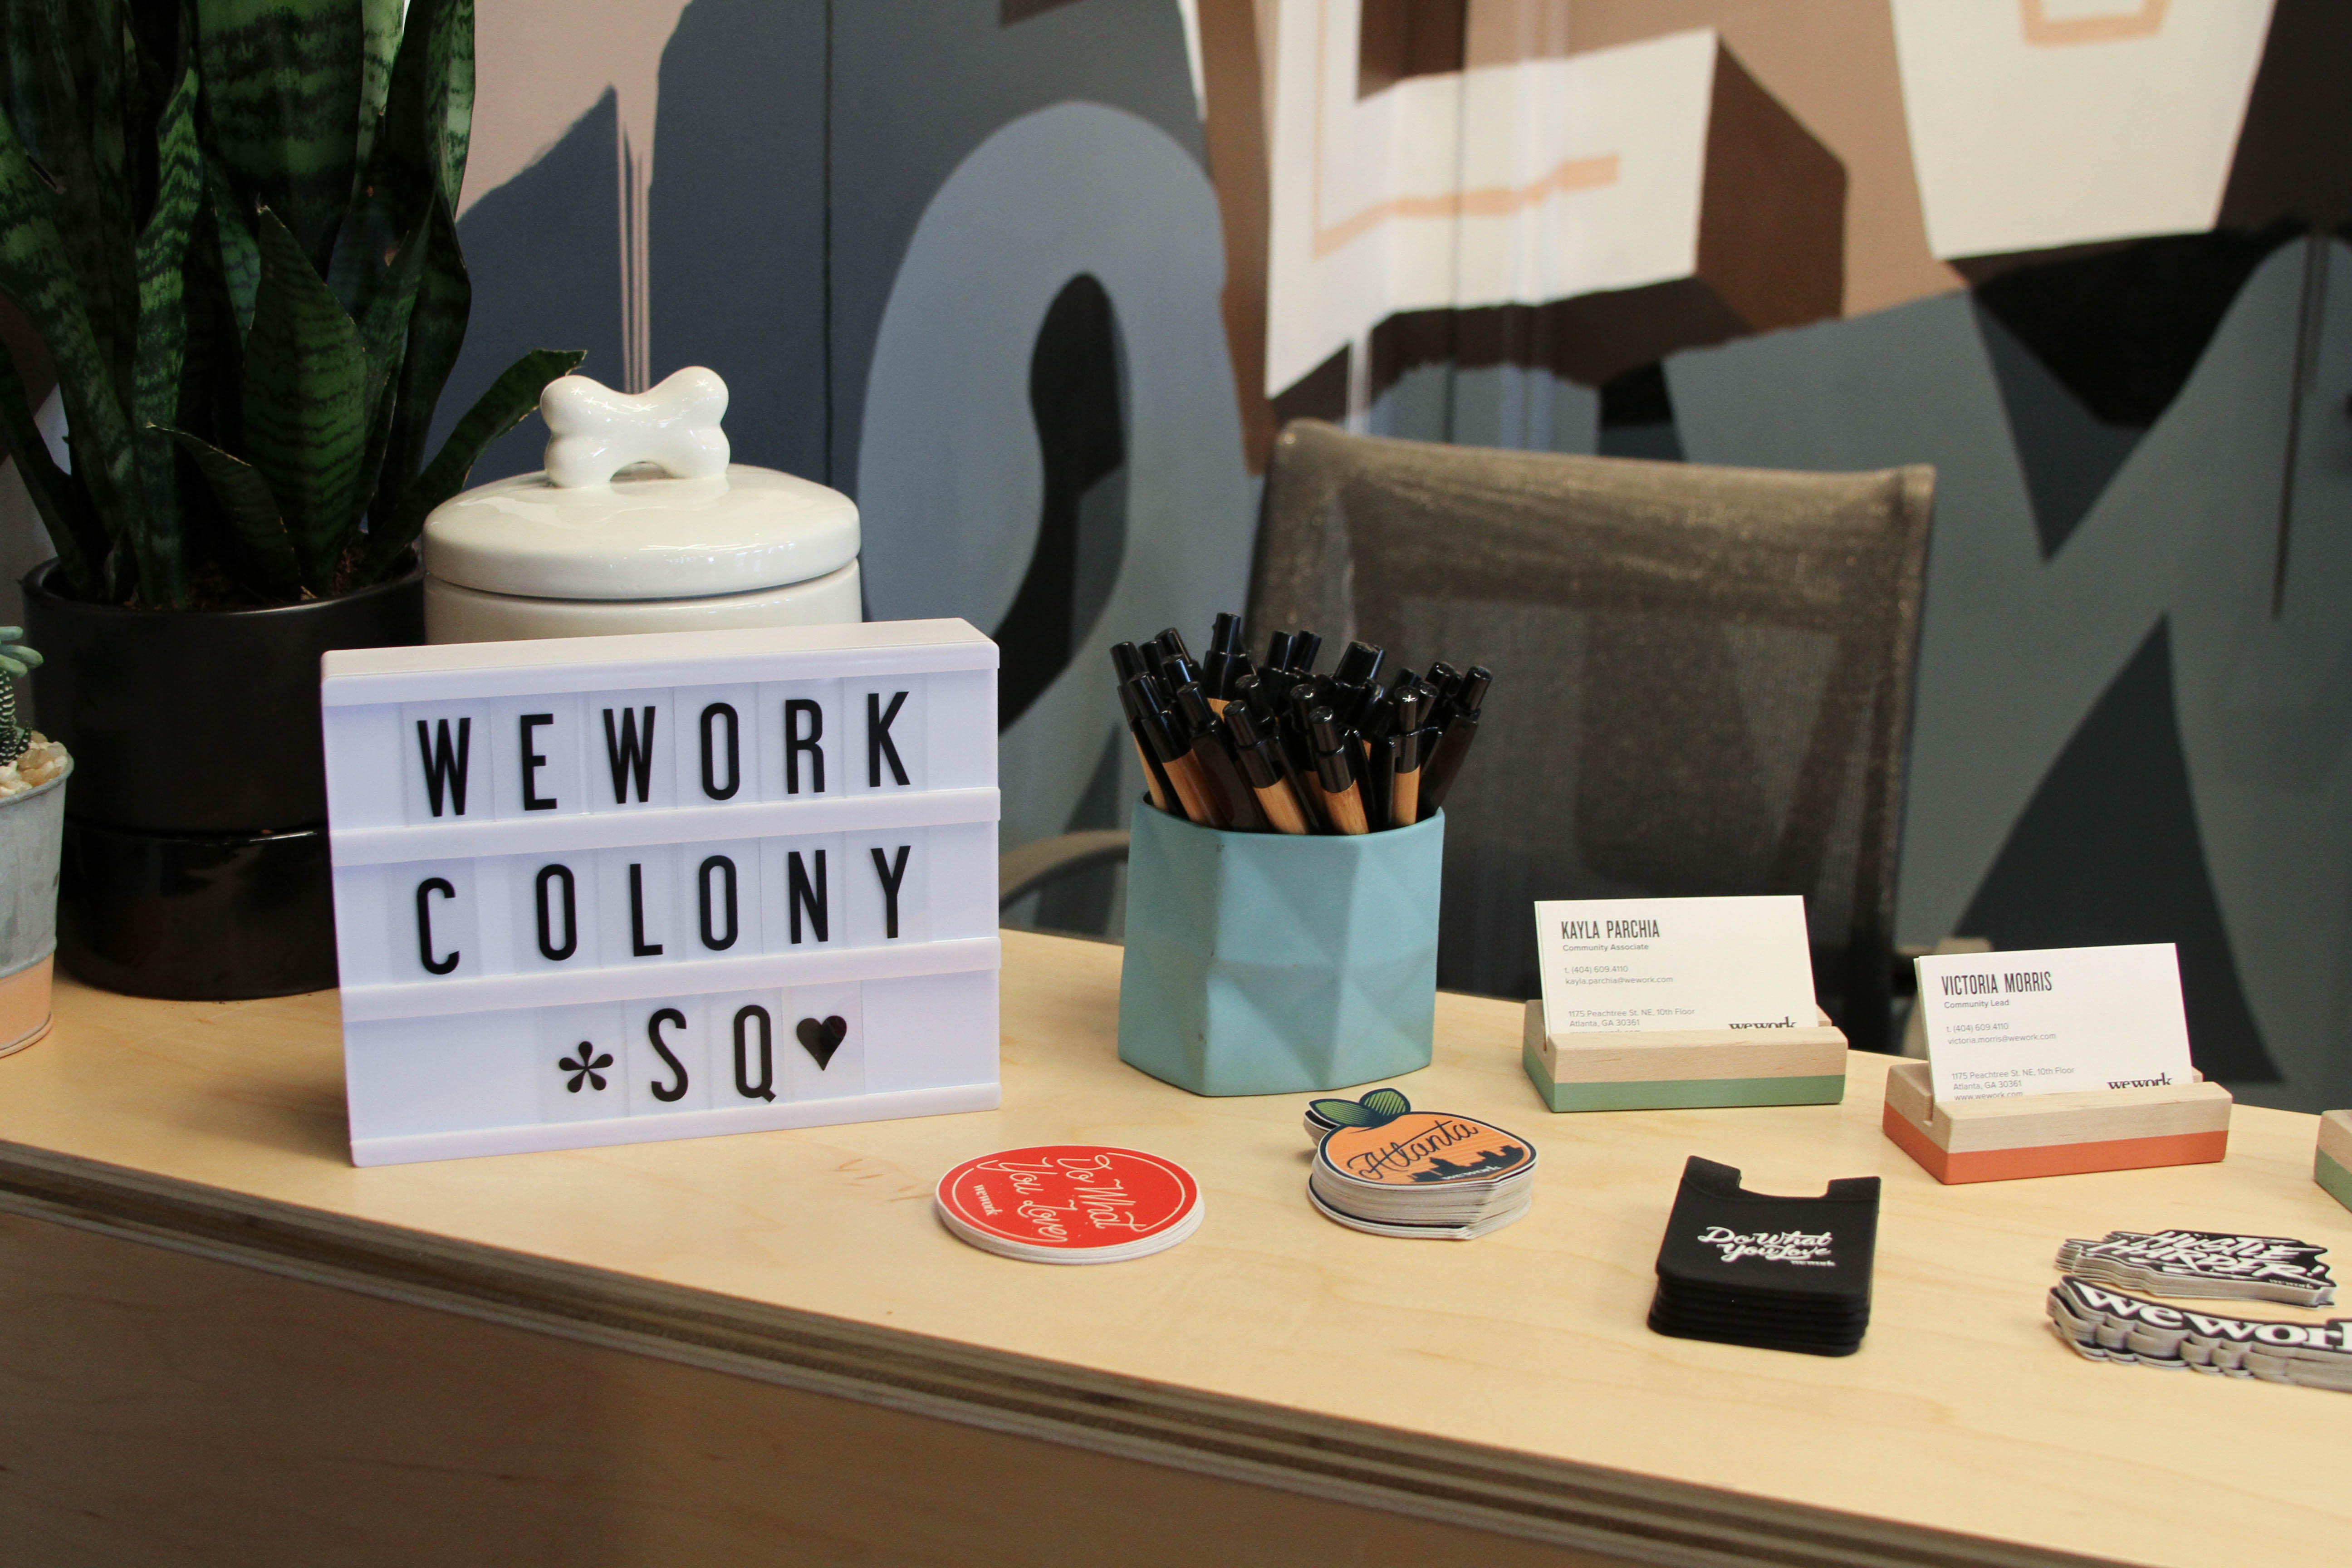 Picture of information desk at WeWork Colony Square. On the desk, there is a light up marquee sign that says WeWork Colony *Sq with a heart.  Near the Marquee sign are various WeWork stickers including a peach, a sticker that says